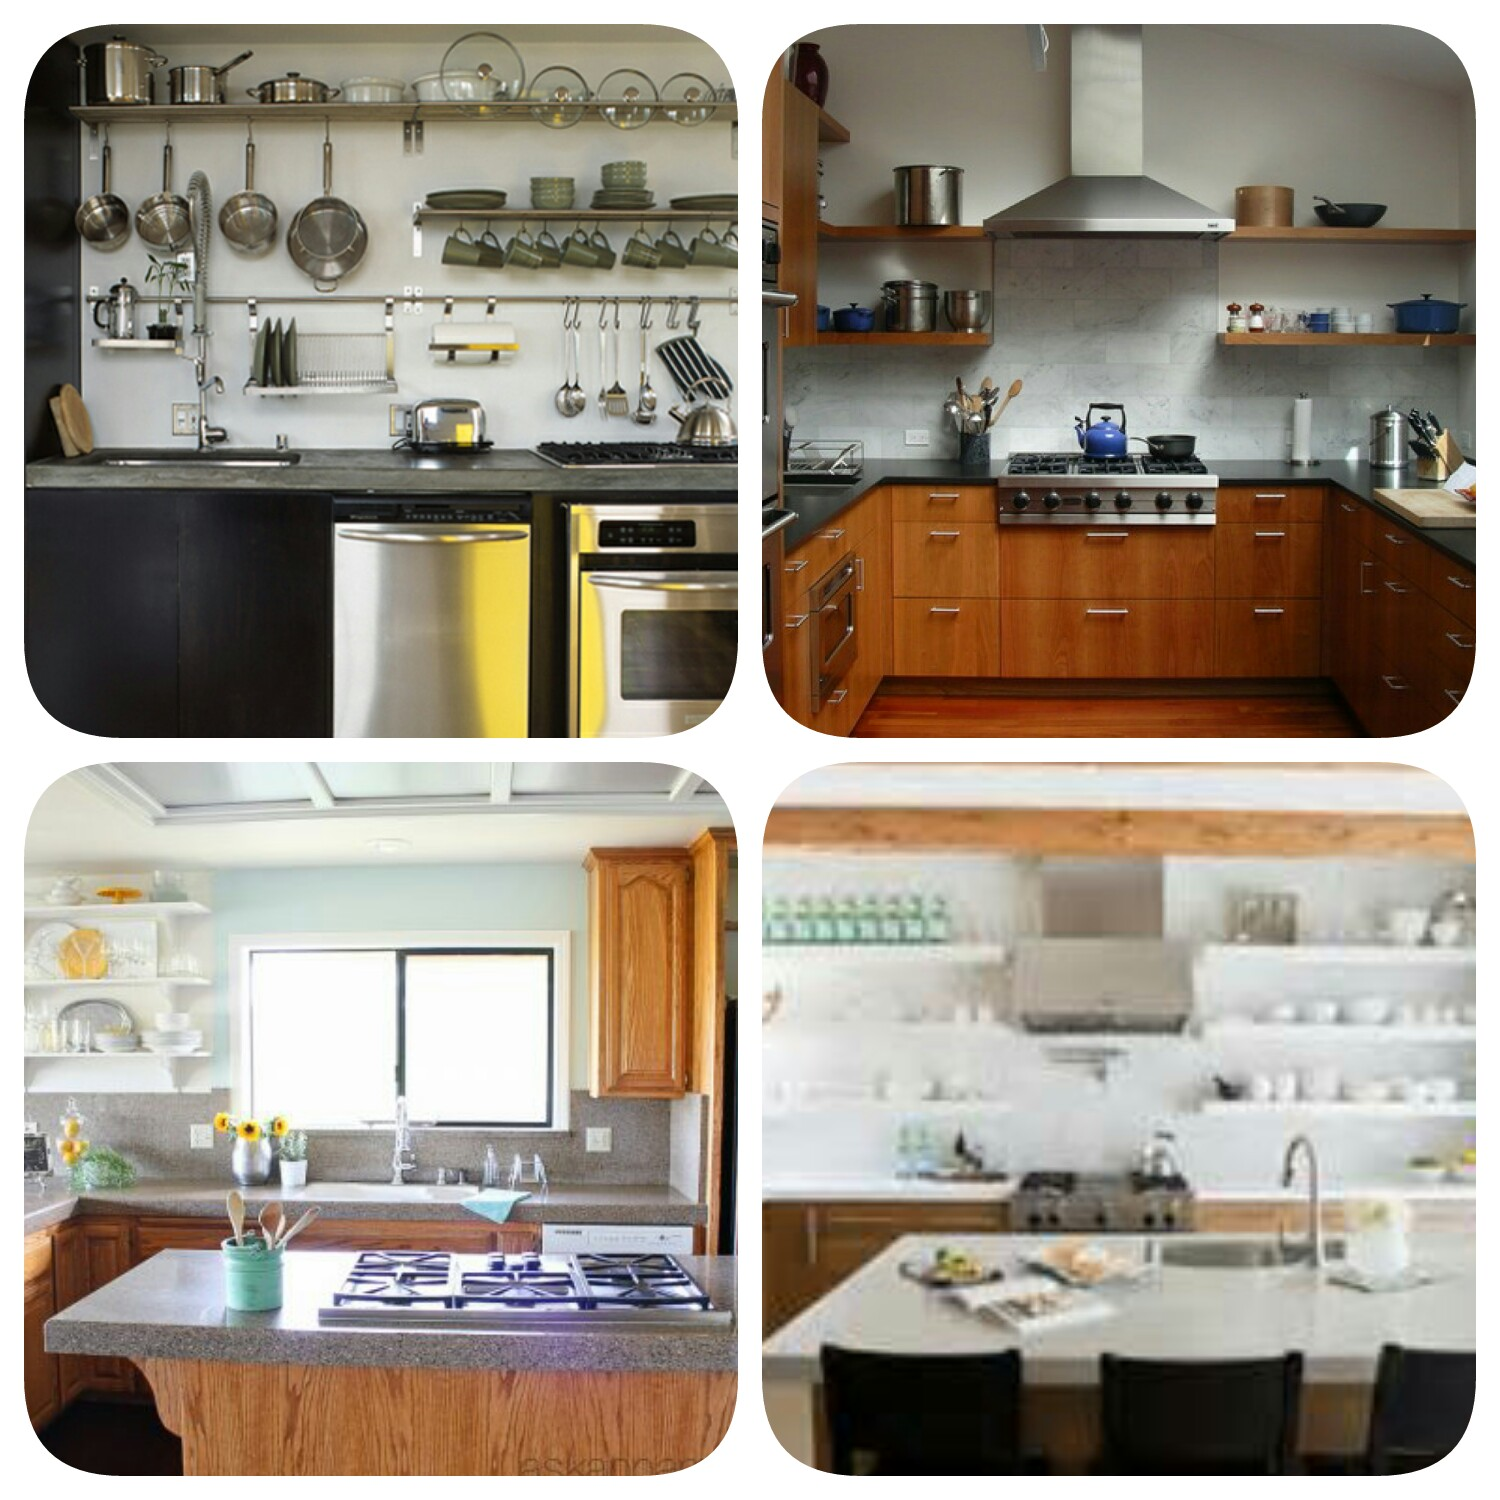 Kitchen Shelves Instead Of Cabinets Open Shelves In Indian Kitchens Are A Big Hit Heres Why